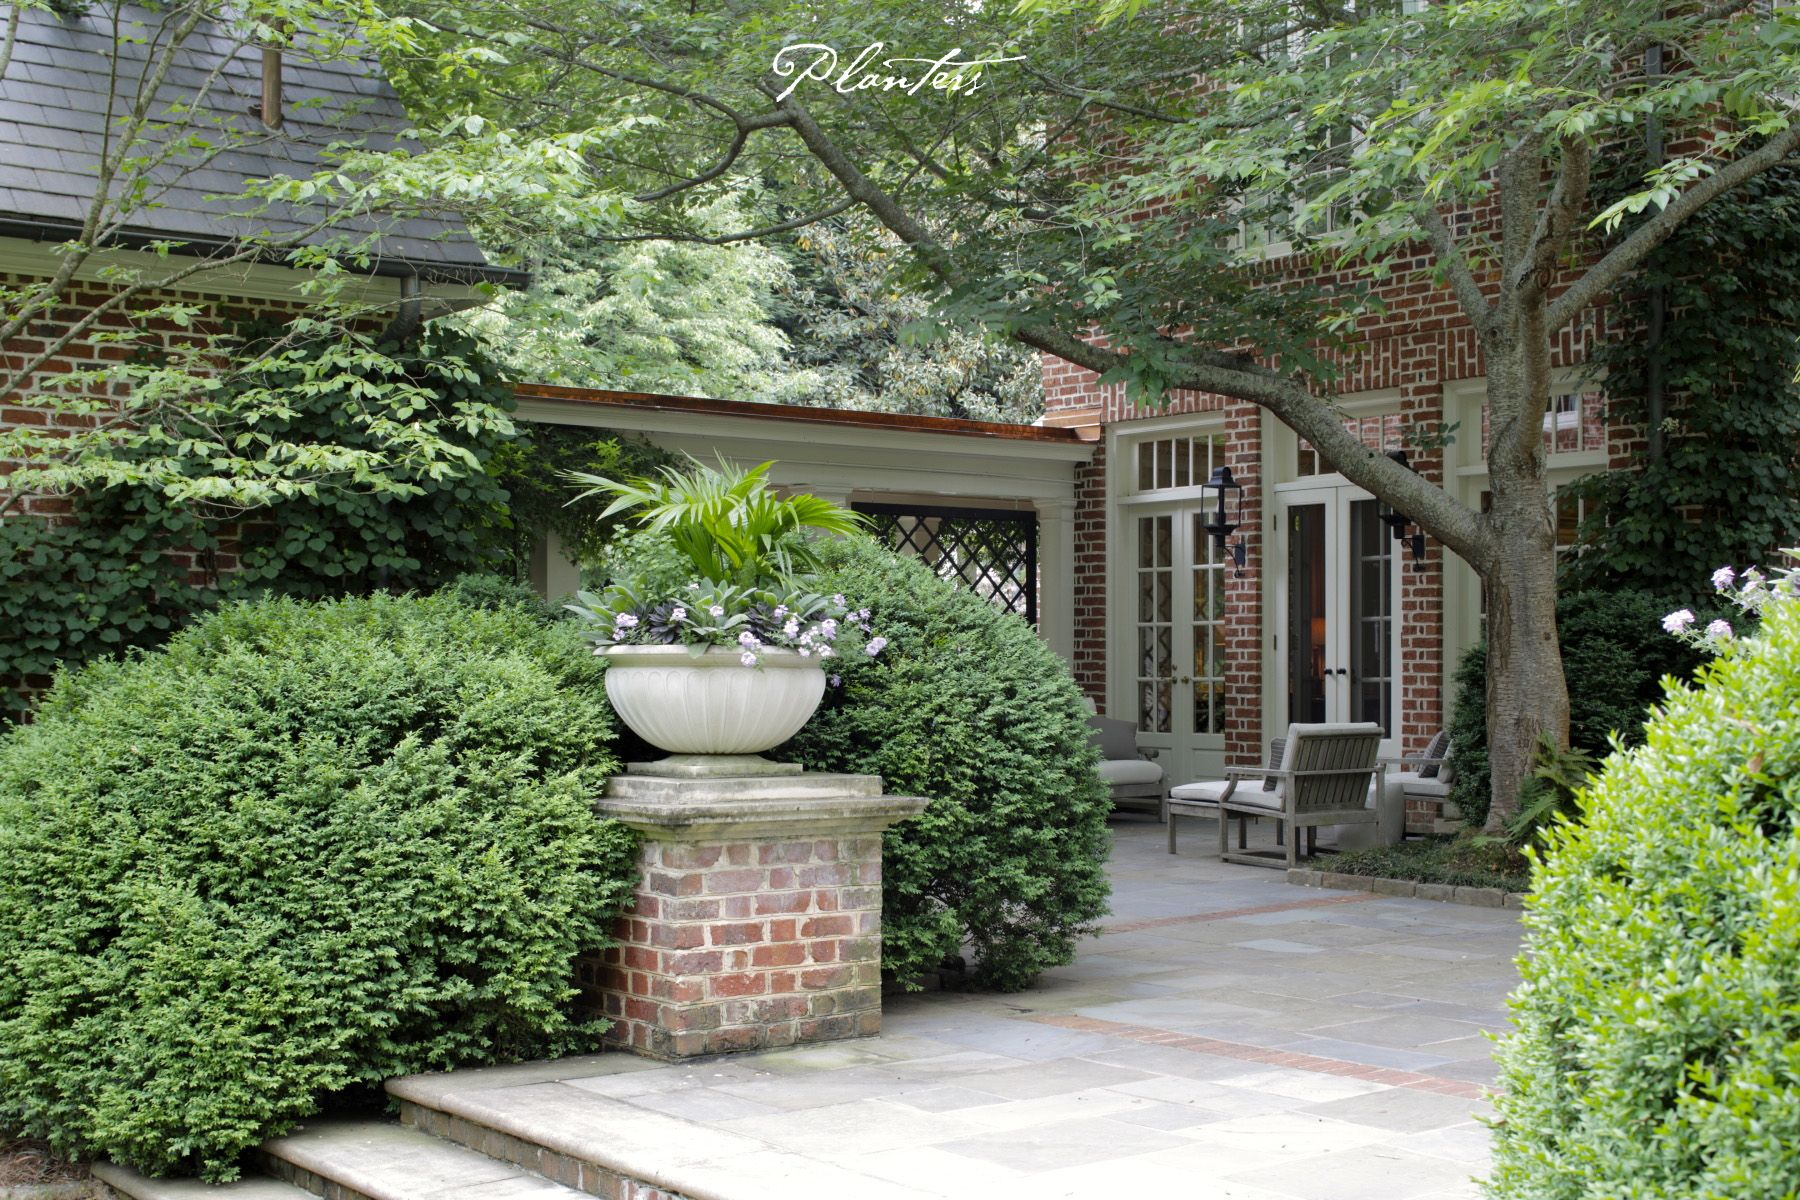 Landscape architect atlanta ga - Bluestone Patio With American Boxwoods And Limestone Garden Bowls Planted With A Chinese Fan Palms And Annual Color A Planters Design